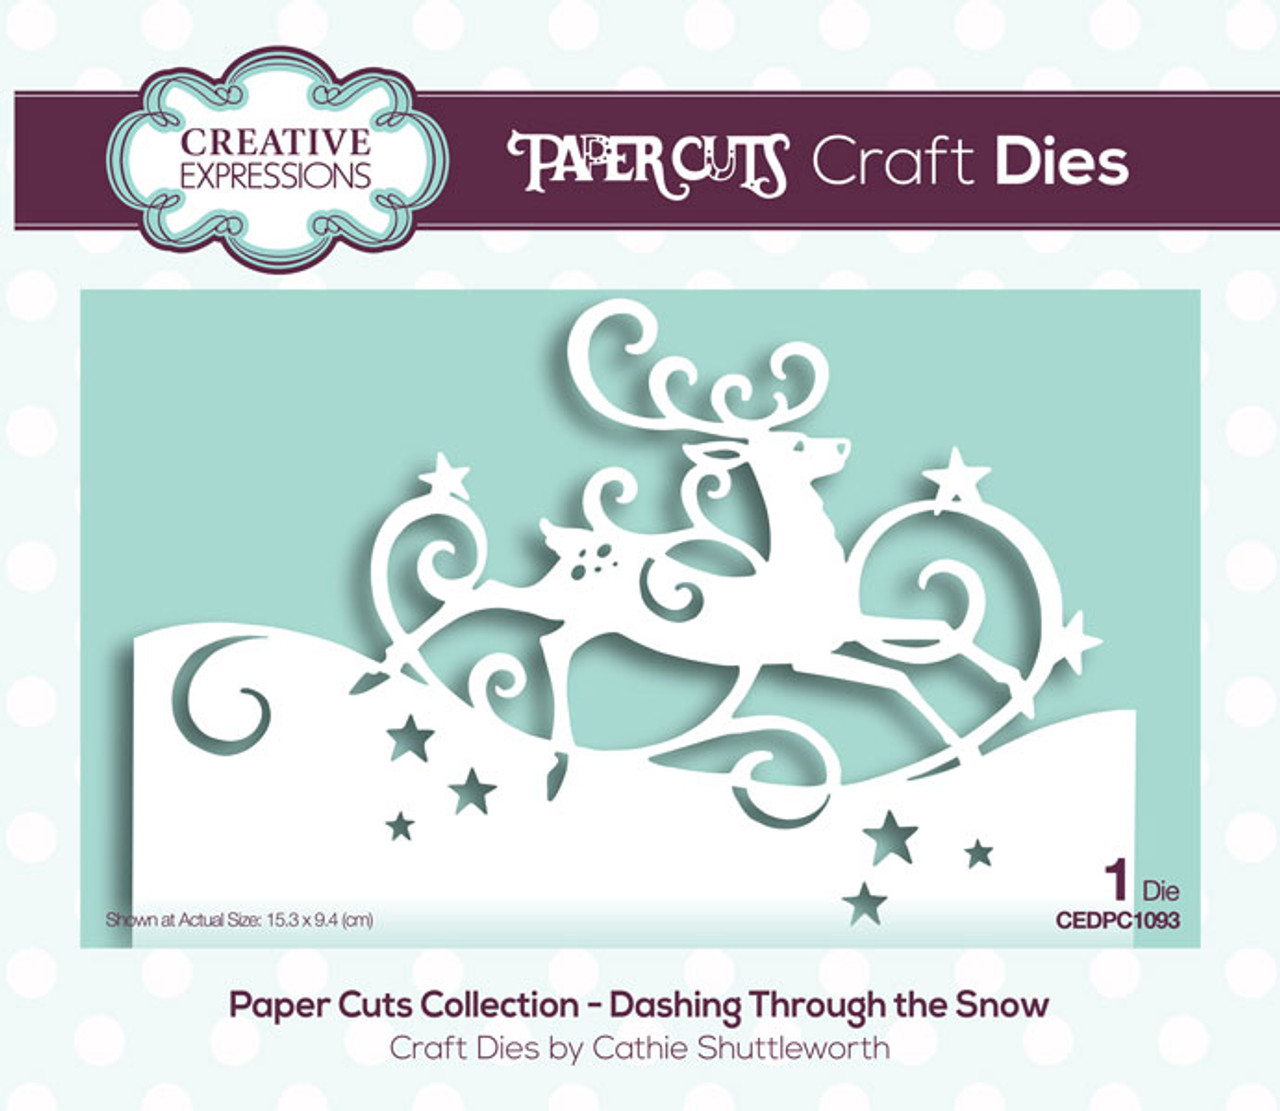 Creative Expressions Paper Cuts Collection Die - Dashing Through the Snow  CEDPC1093